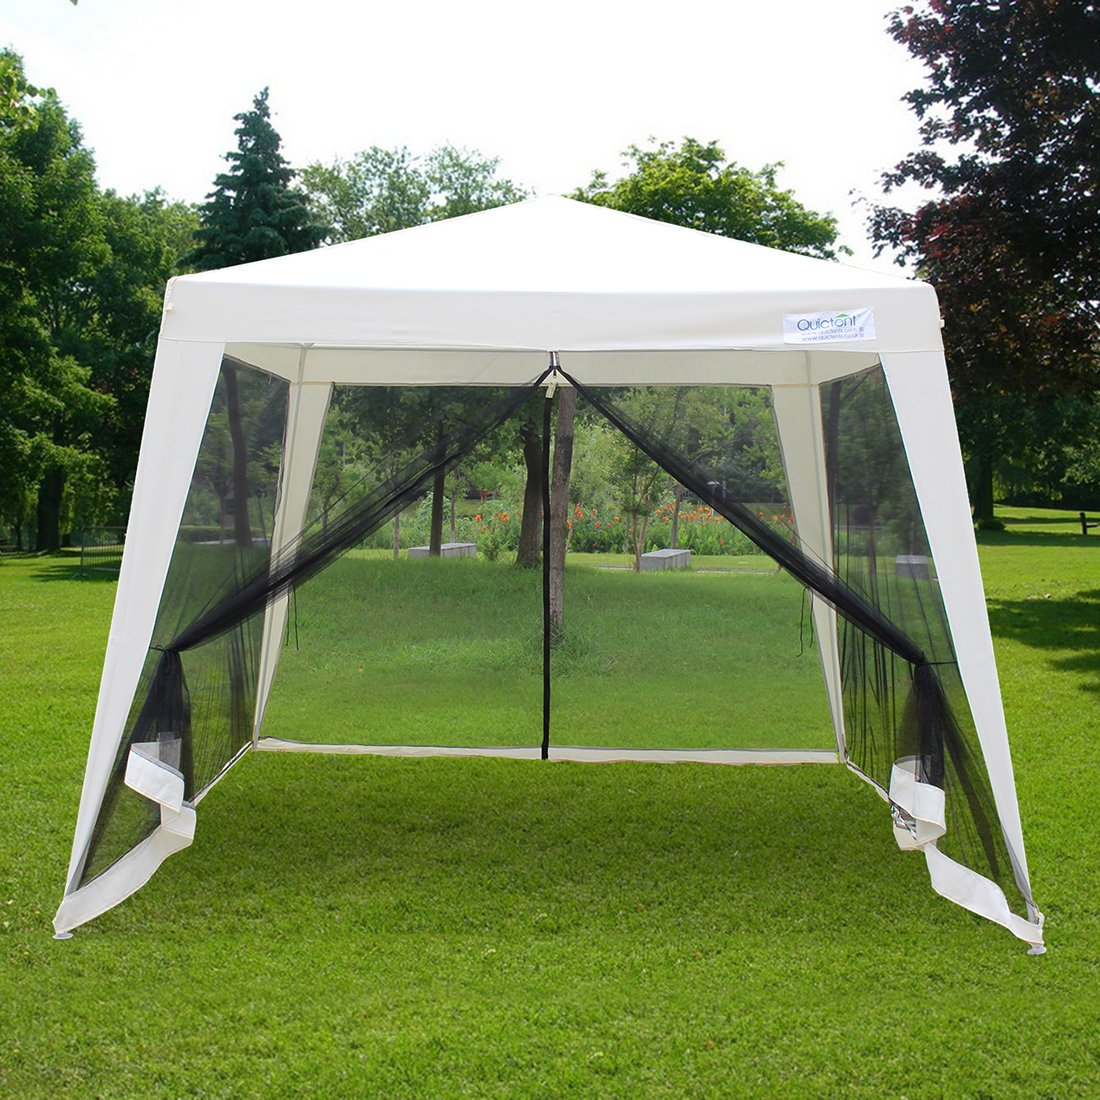 Quictent 10'x10'/7.9'x7.9' Outdoor Trapezoid Canopy Party Tent Gazebo Screen House Sun Shade Shelter with Fully Enclosed Black Mesh Side Wall Beige